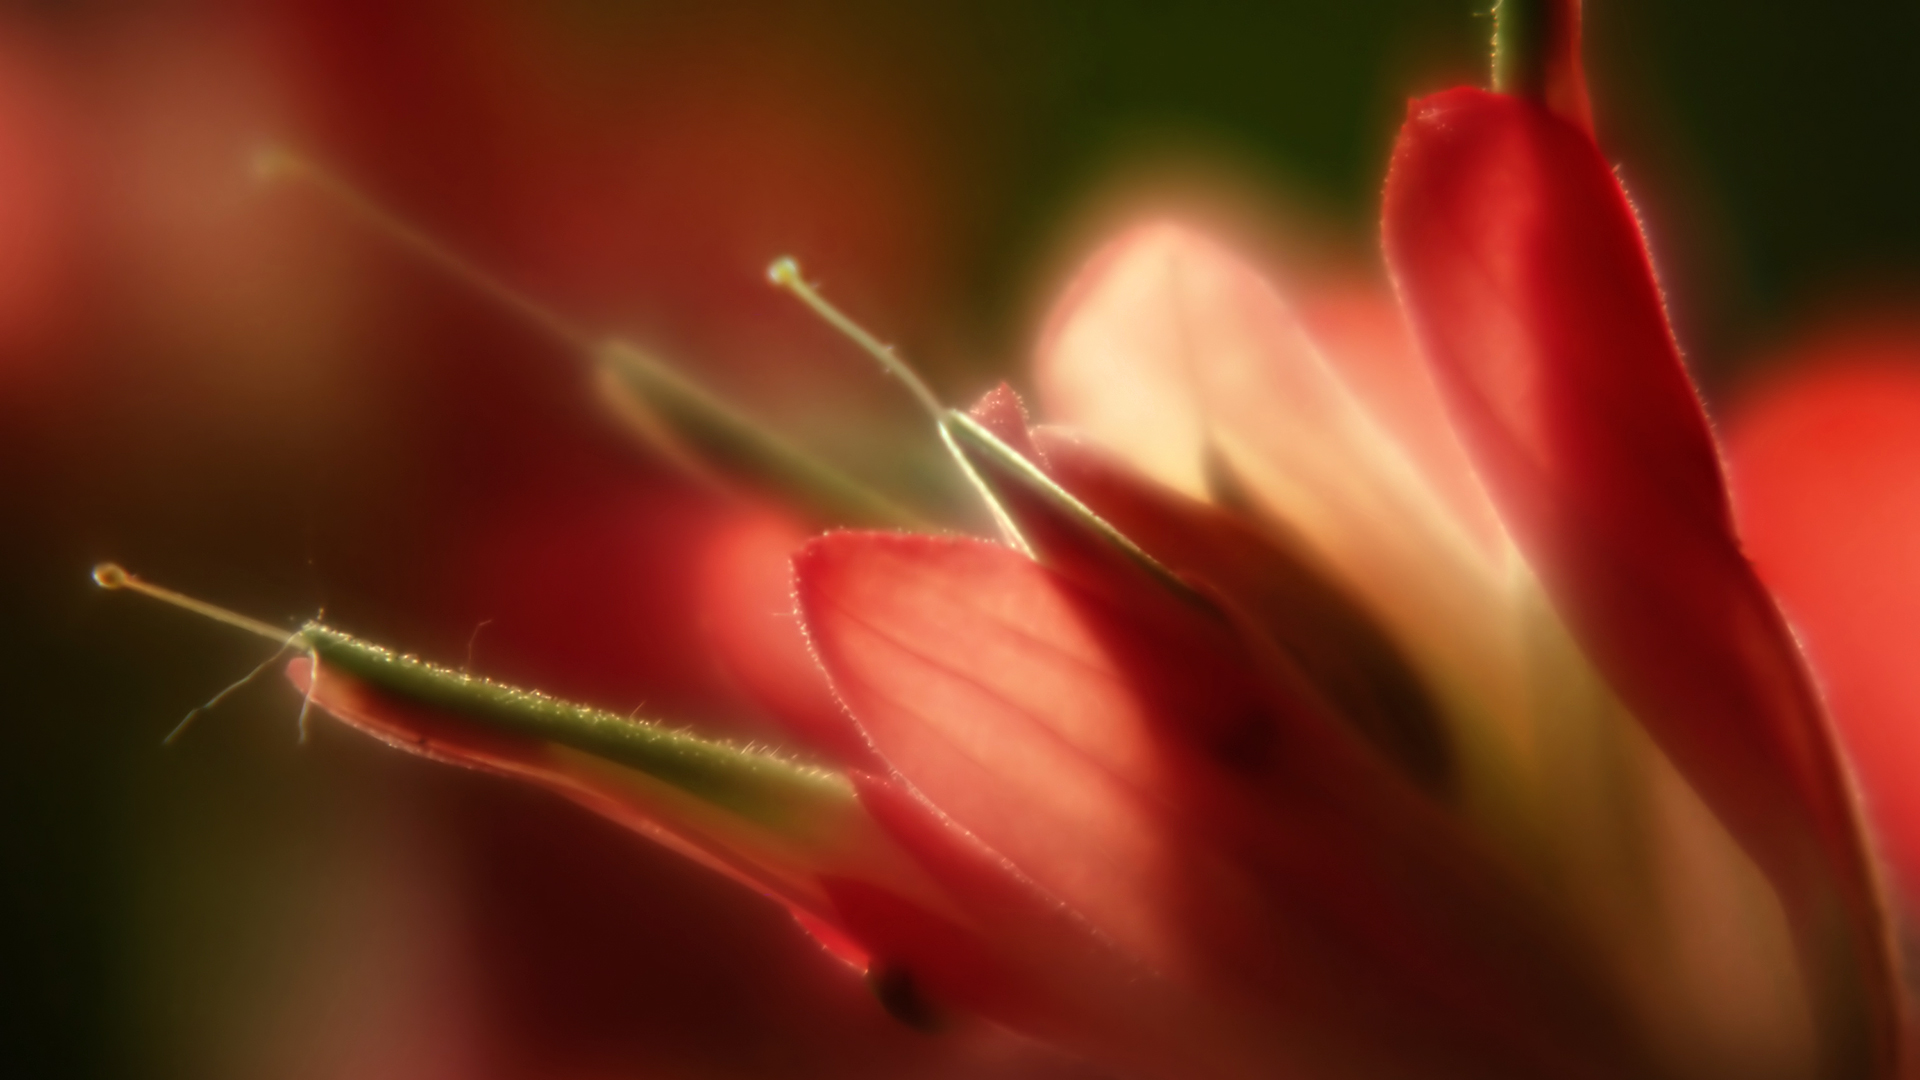 Lovely Flower Macro Wallpaper 14176